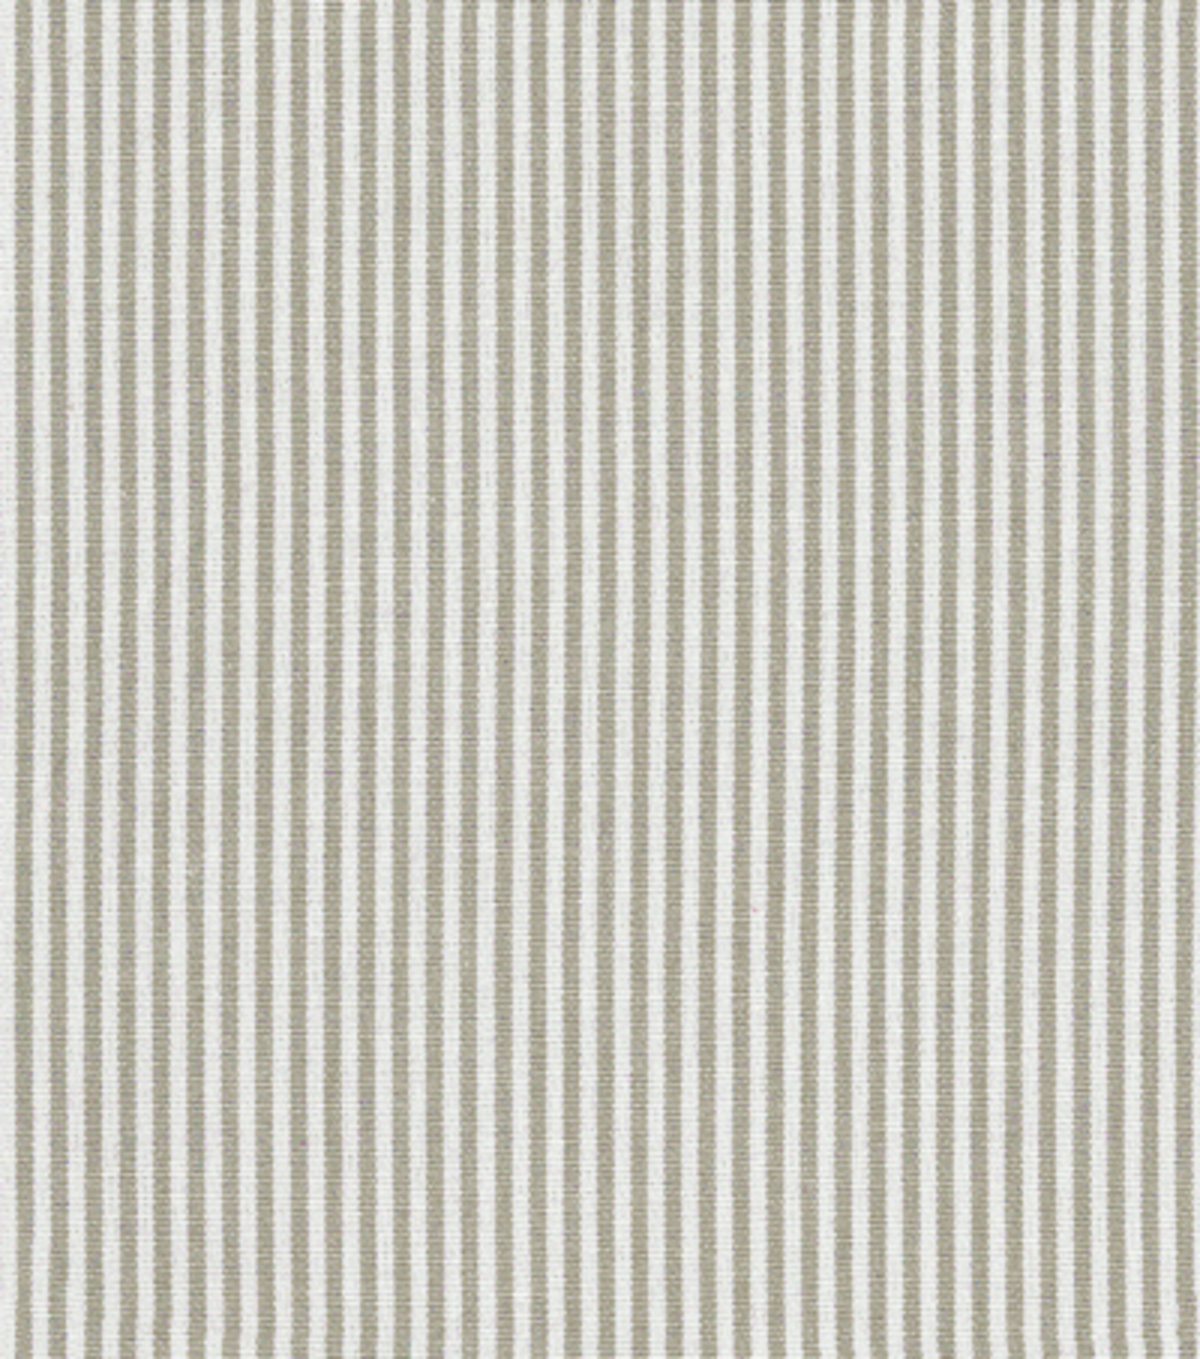 Home Decor 8\u0022x8\u0022 Fabric Swatch-Covington Darlington